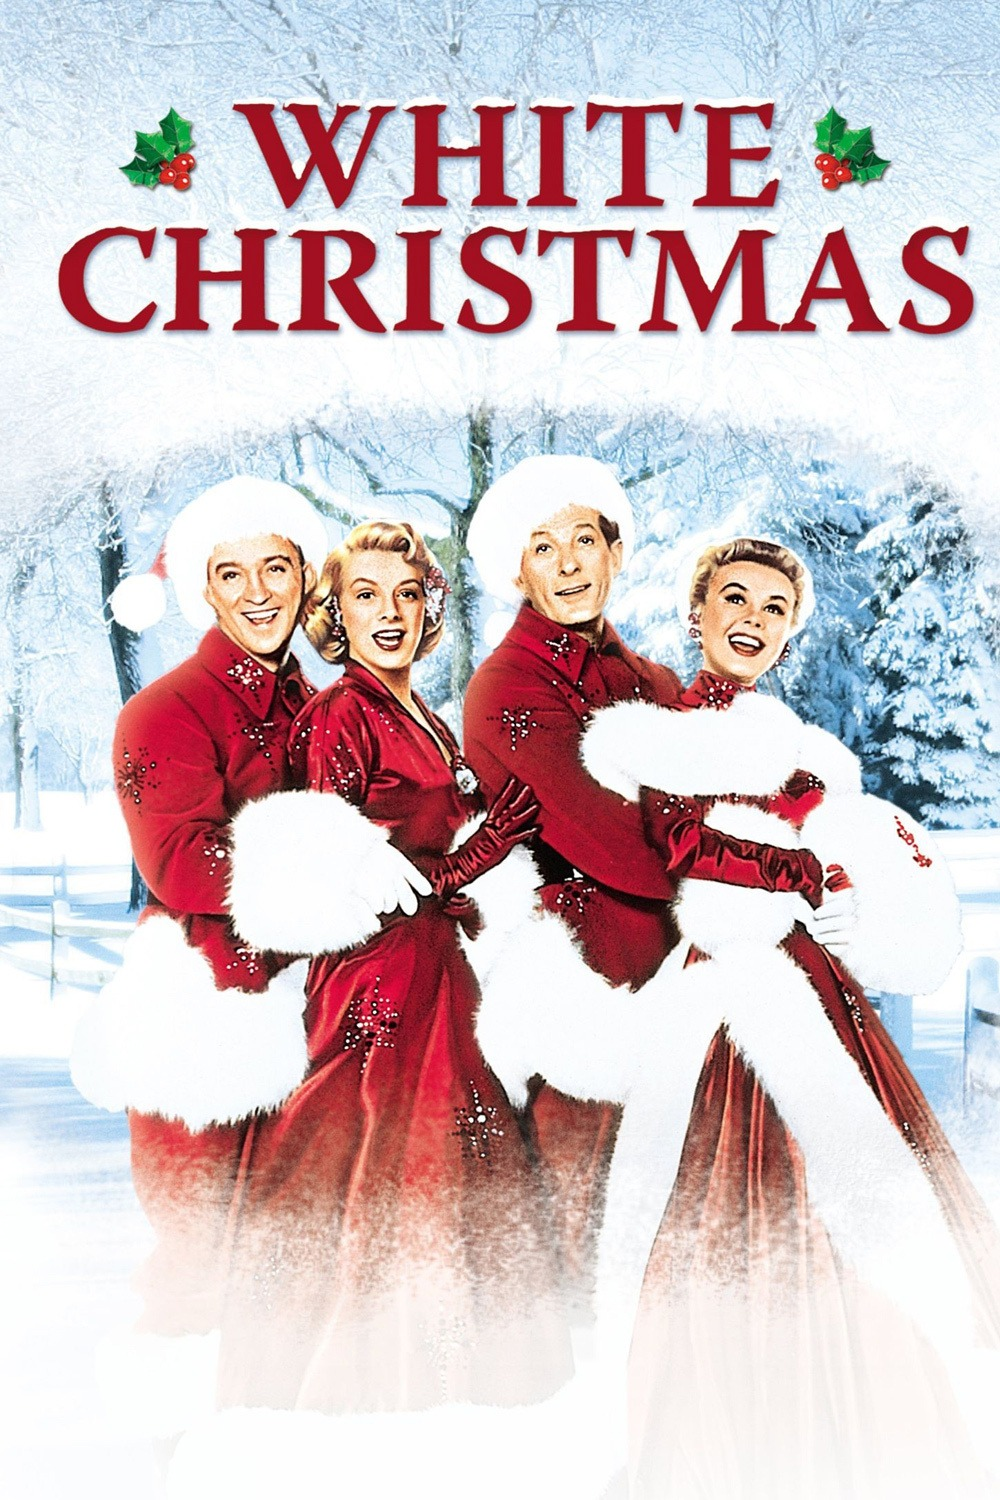 best christmas movies on netflix 10 white christmas - Best Christmas Movies On Netflix